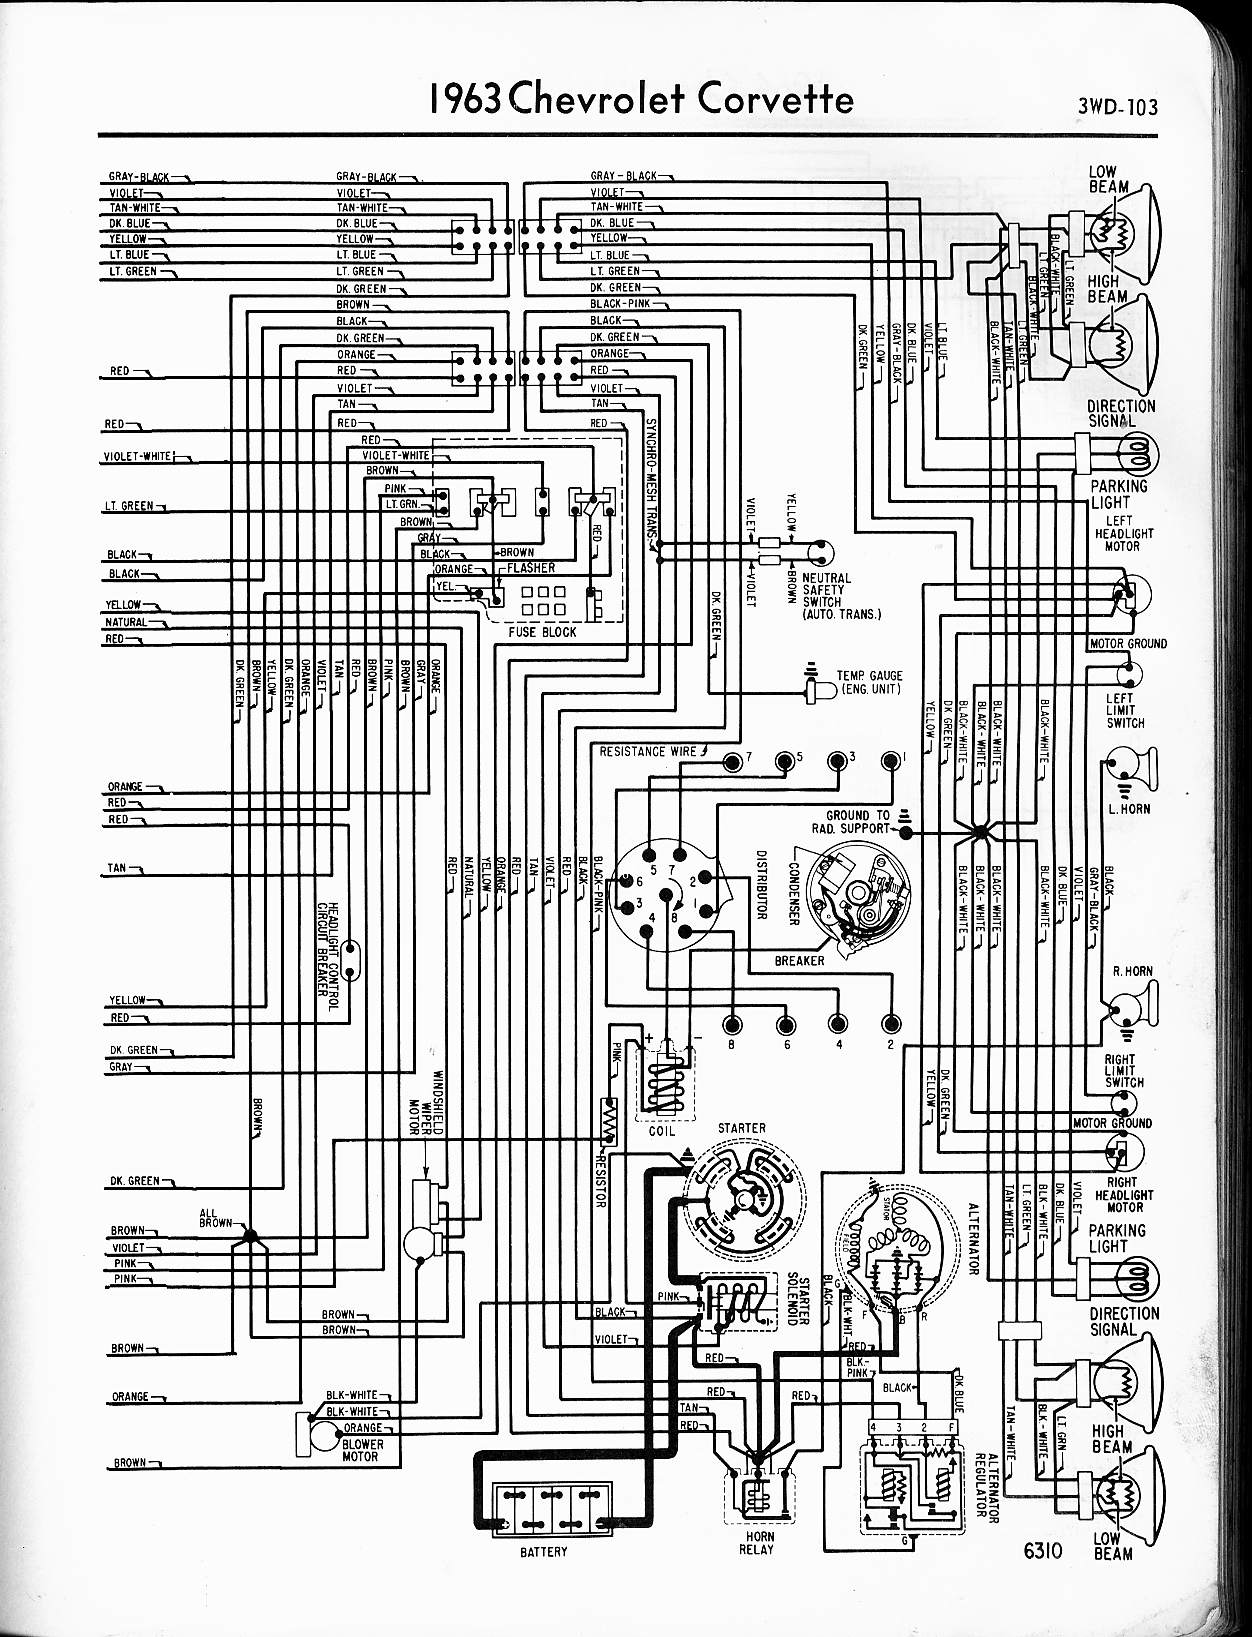 WRG-2833] 1978 Corvette Radio Wiring Diagram on